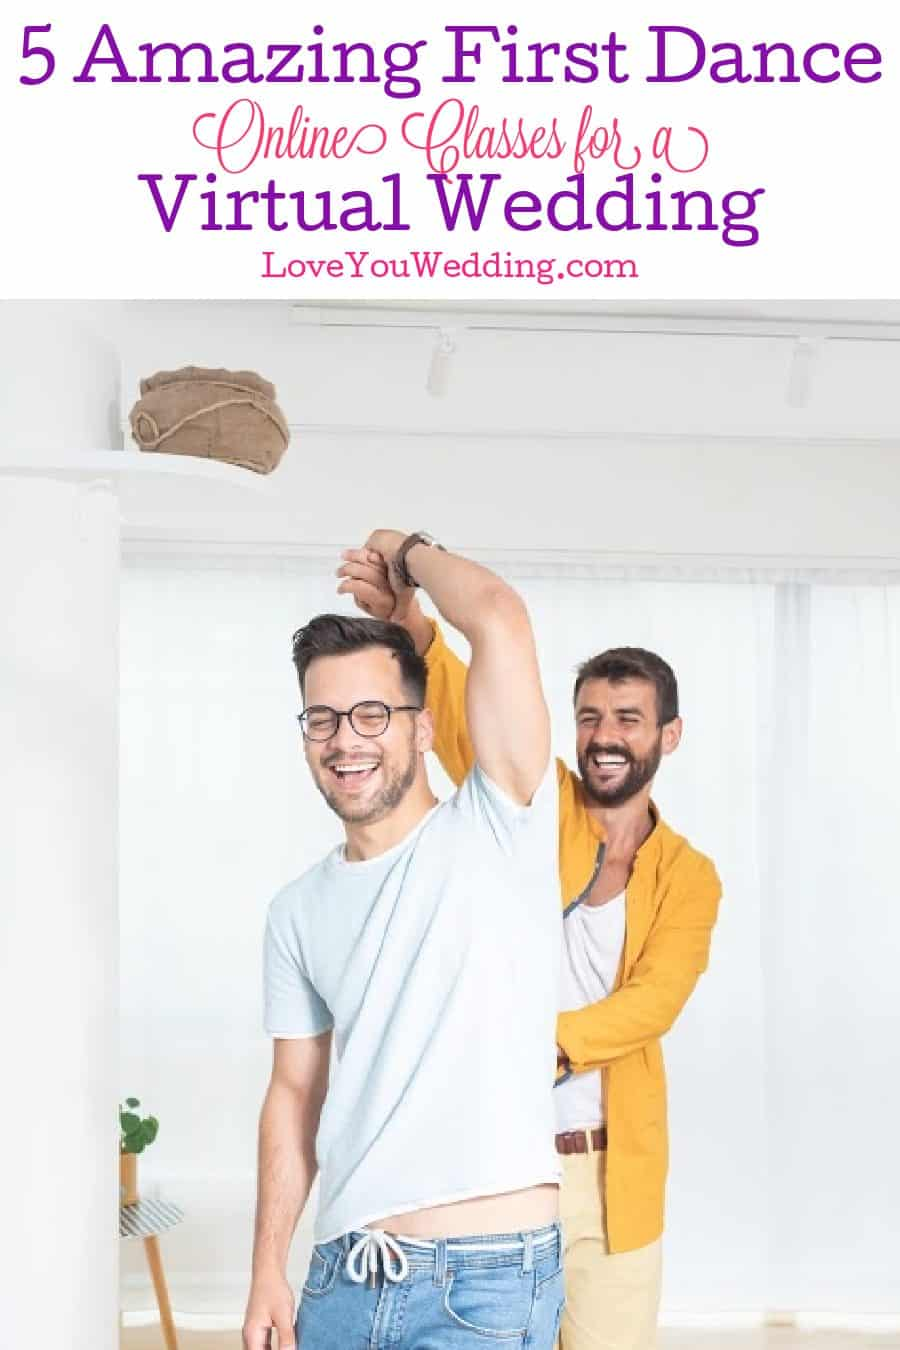 Are first dance online classes for a virtual wedding worth your time? What are your options when it comes to them? Find out both answers!